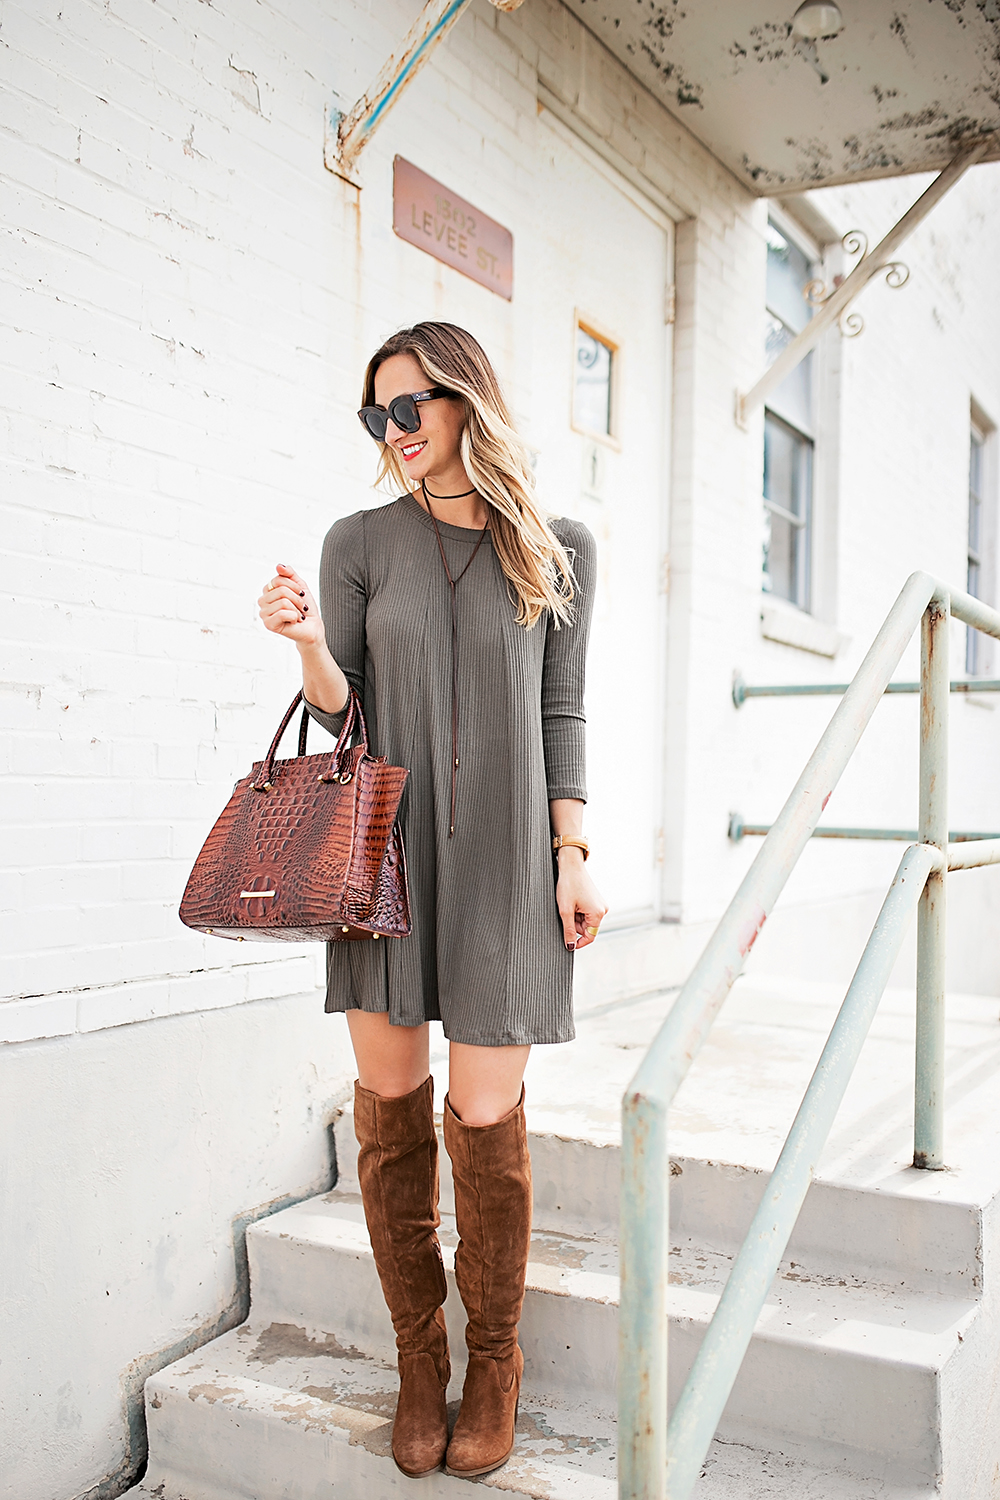 livvyland-blog-olivia-watson-austin-texas-fashion-blogger-fall-outfit-over-the-knee-otk-boots-brahmin-duxbury-handbag-olive-green-shift-dress-celine-marta-mini-sunglasses-6